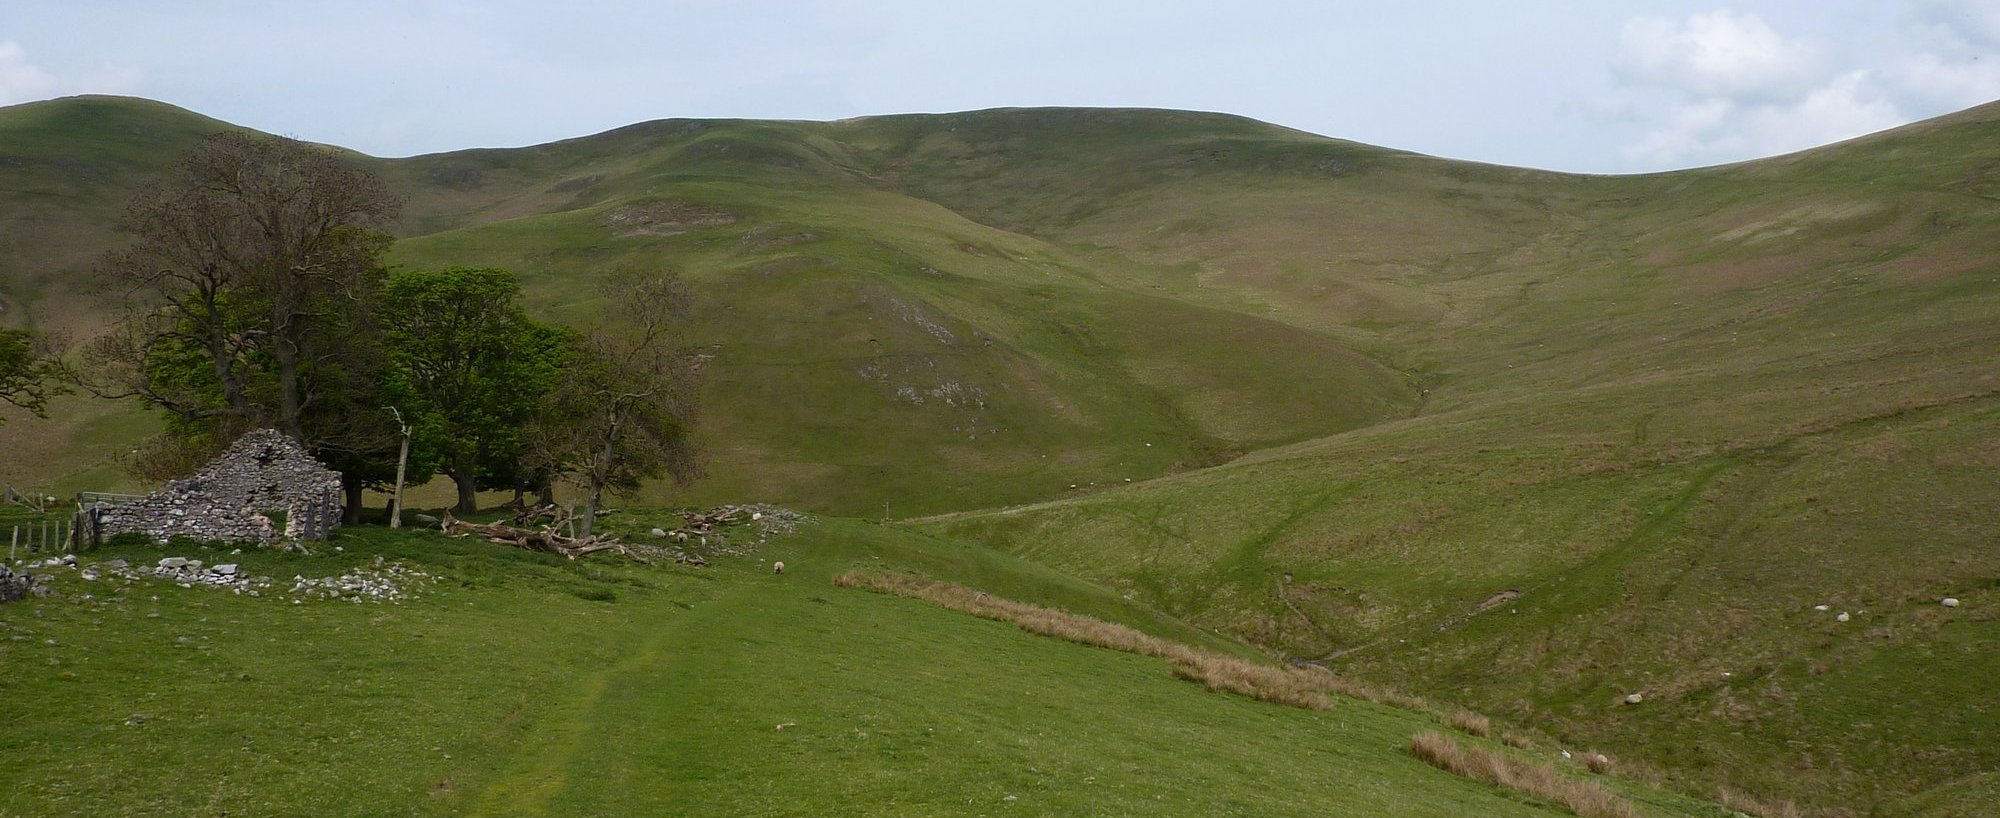 On final approach to Kirk Yetholm